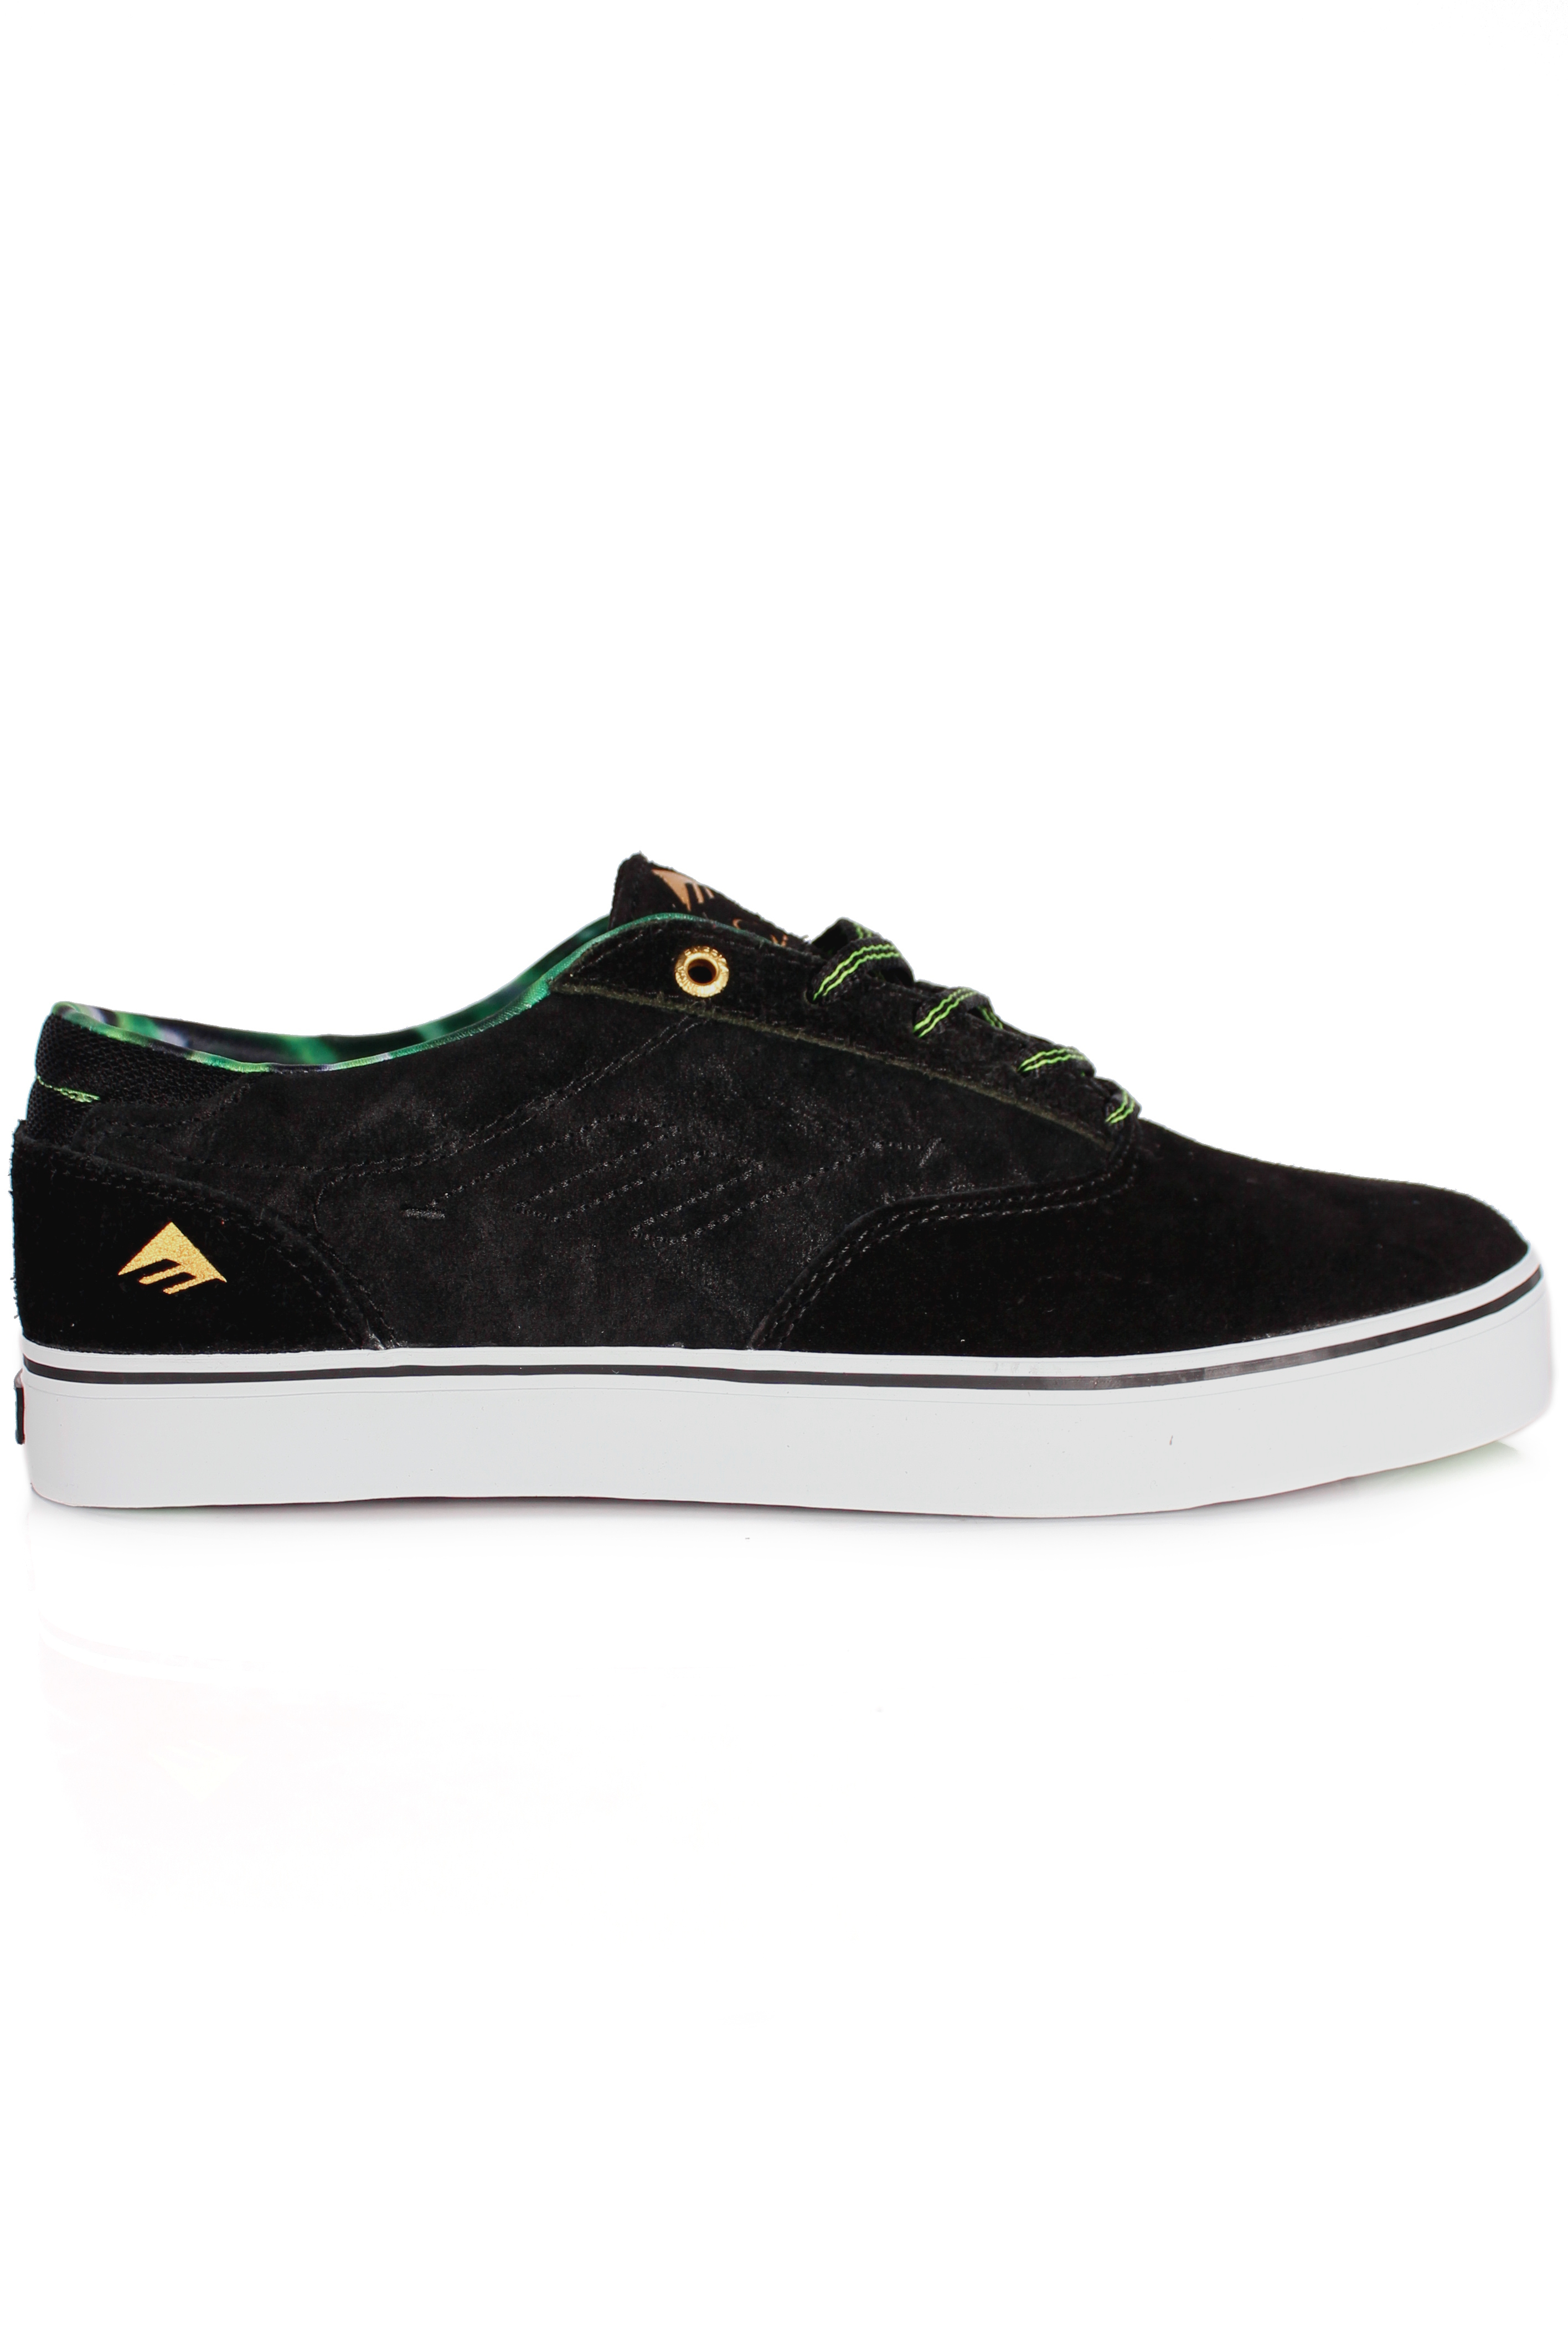 Buty Emerica The Provost (Blk/Grn)